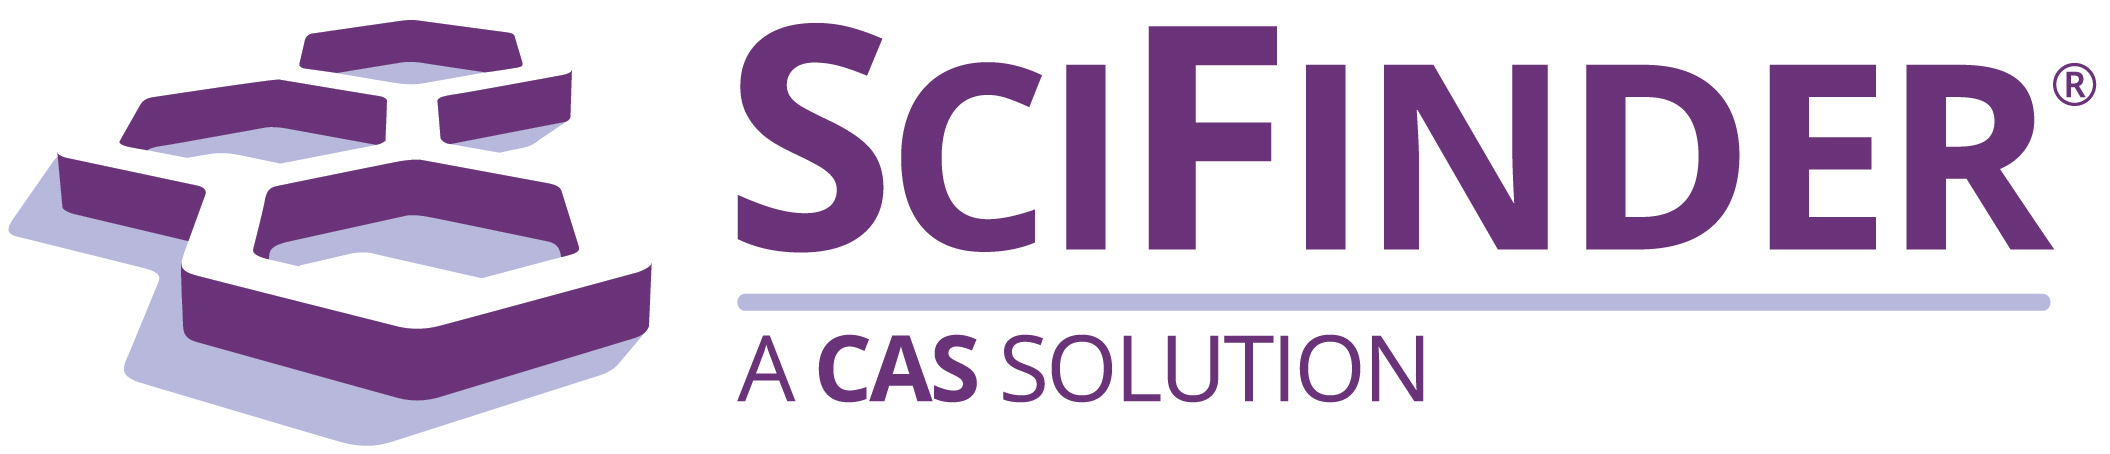 SciFinder logo, no caption